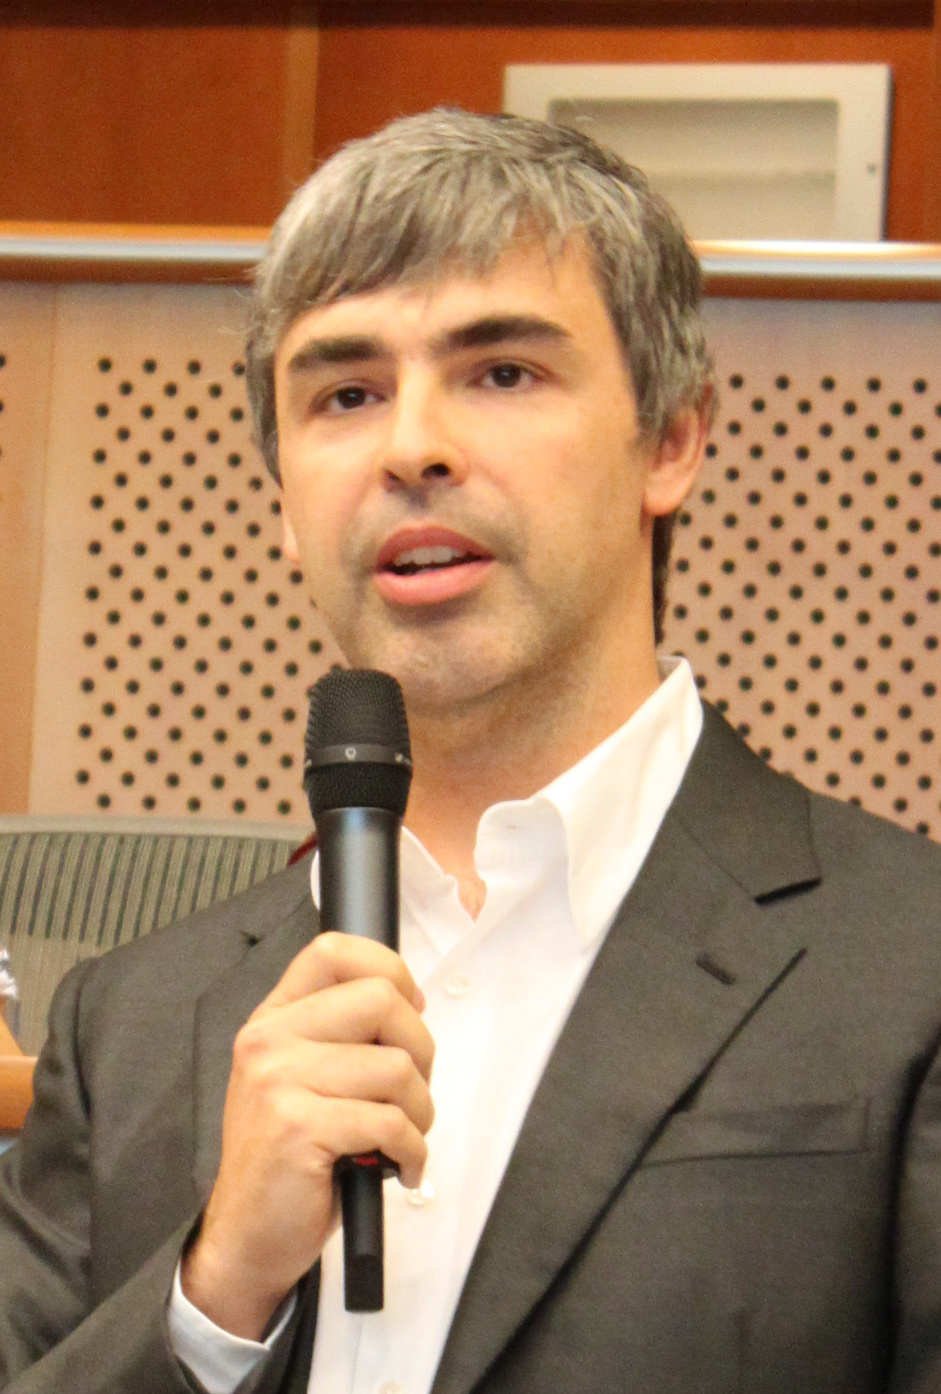 File:Larry Page in the European Parliament, 17.06.2009 (cropped1 ...